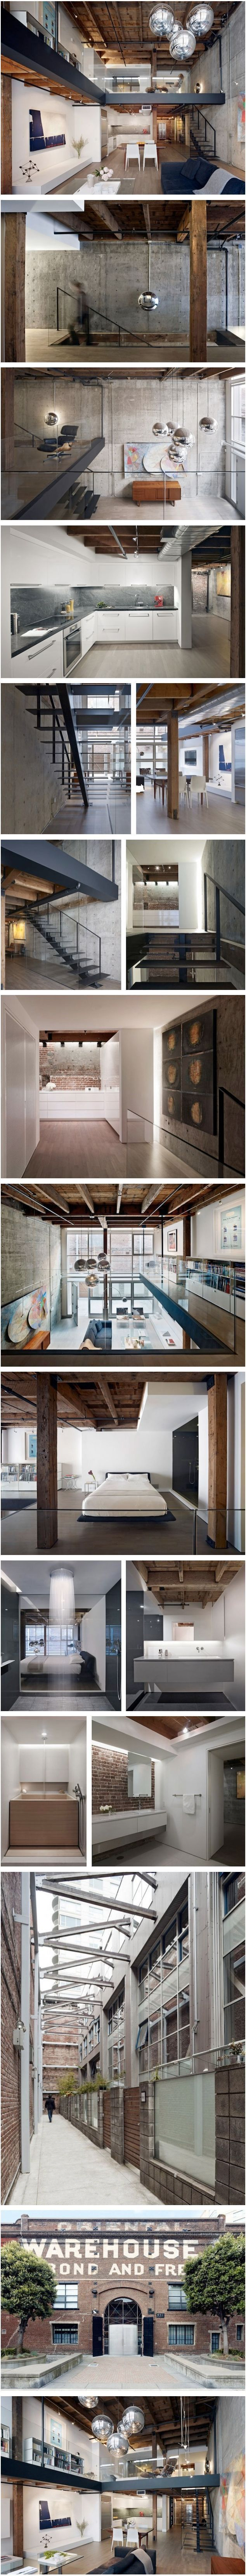 Cubus, Galerie, Holzbalkendecke | Union Block | Pinterest | Lofts ...